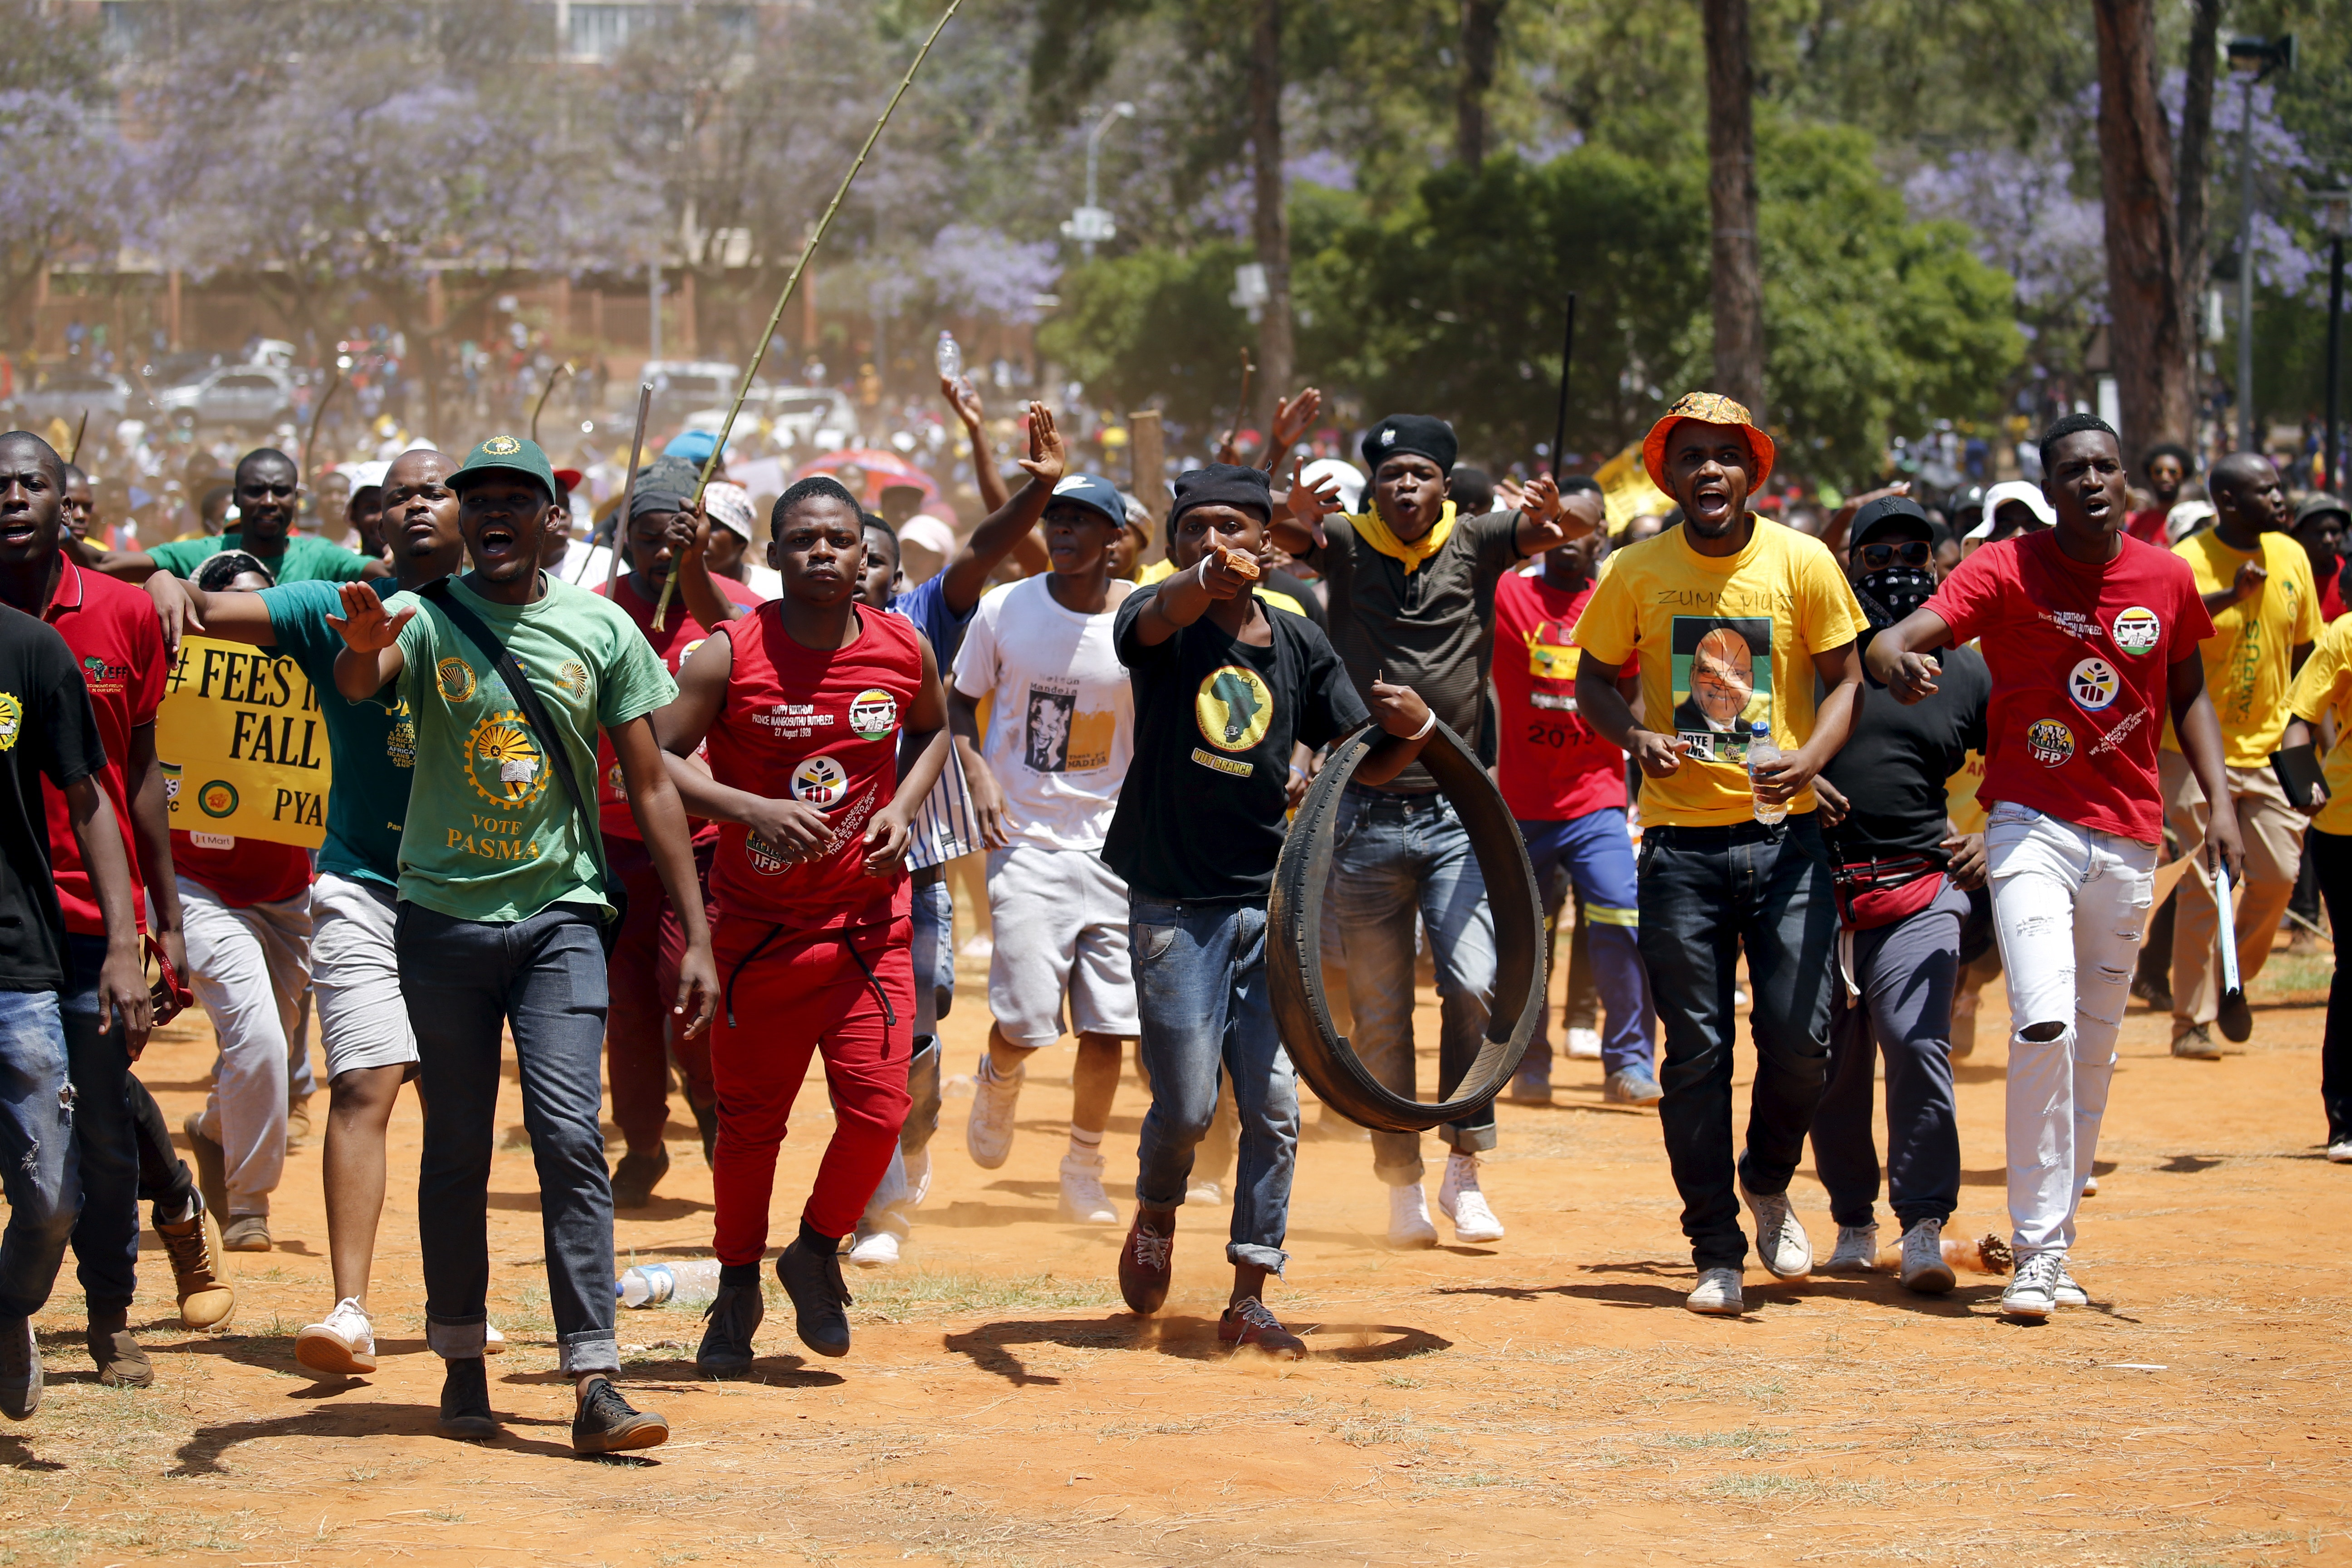 Pictures of strikes in south africa South Africa profile - Timeline - BBC News